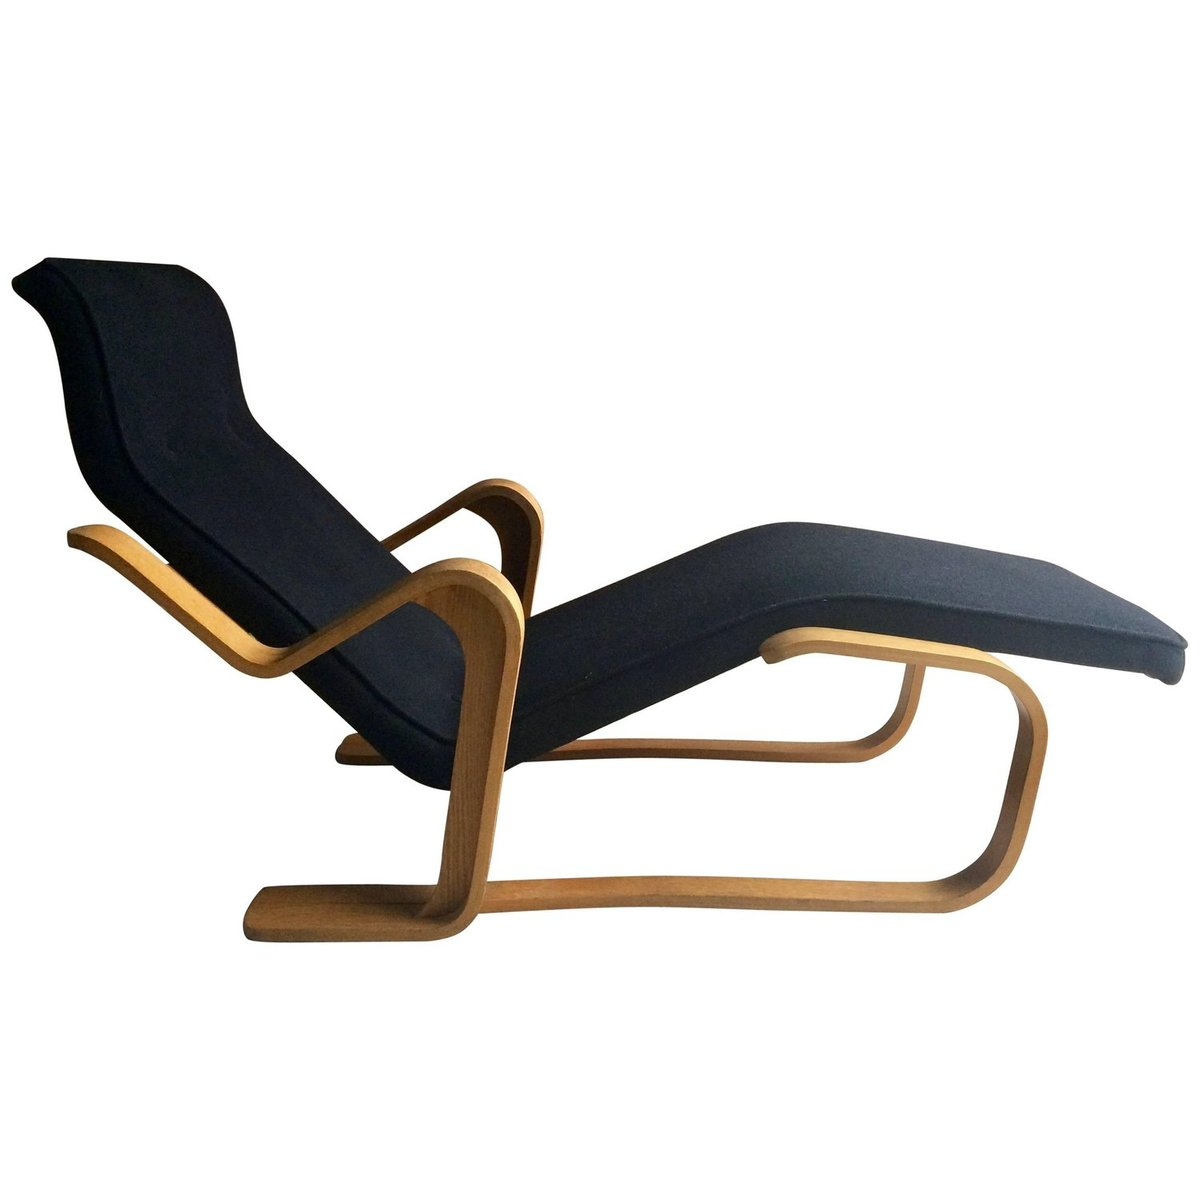 vintage black long chair by marcel breuer for sale at pamono. Black Bedroom Furniture Sets. Home Design Ideas